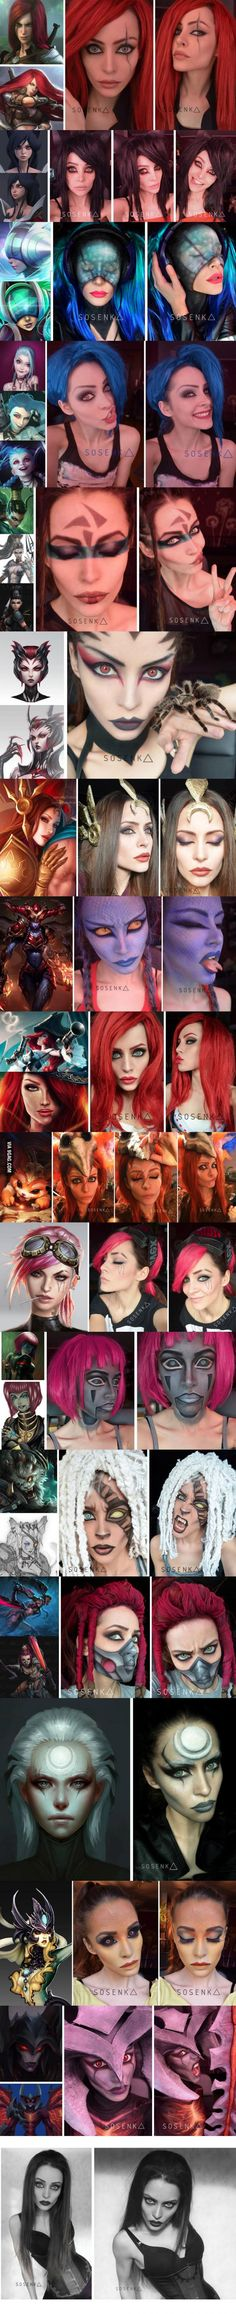 League of Legends Makeup